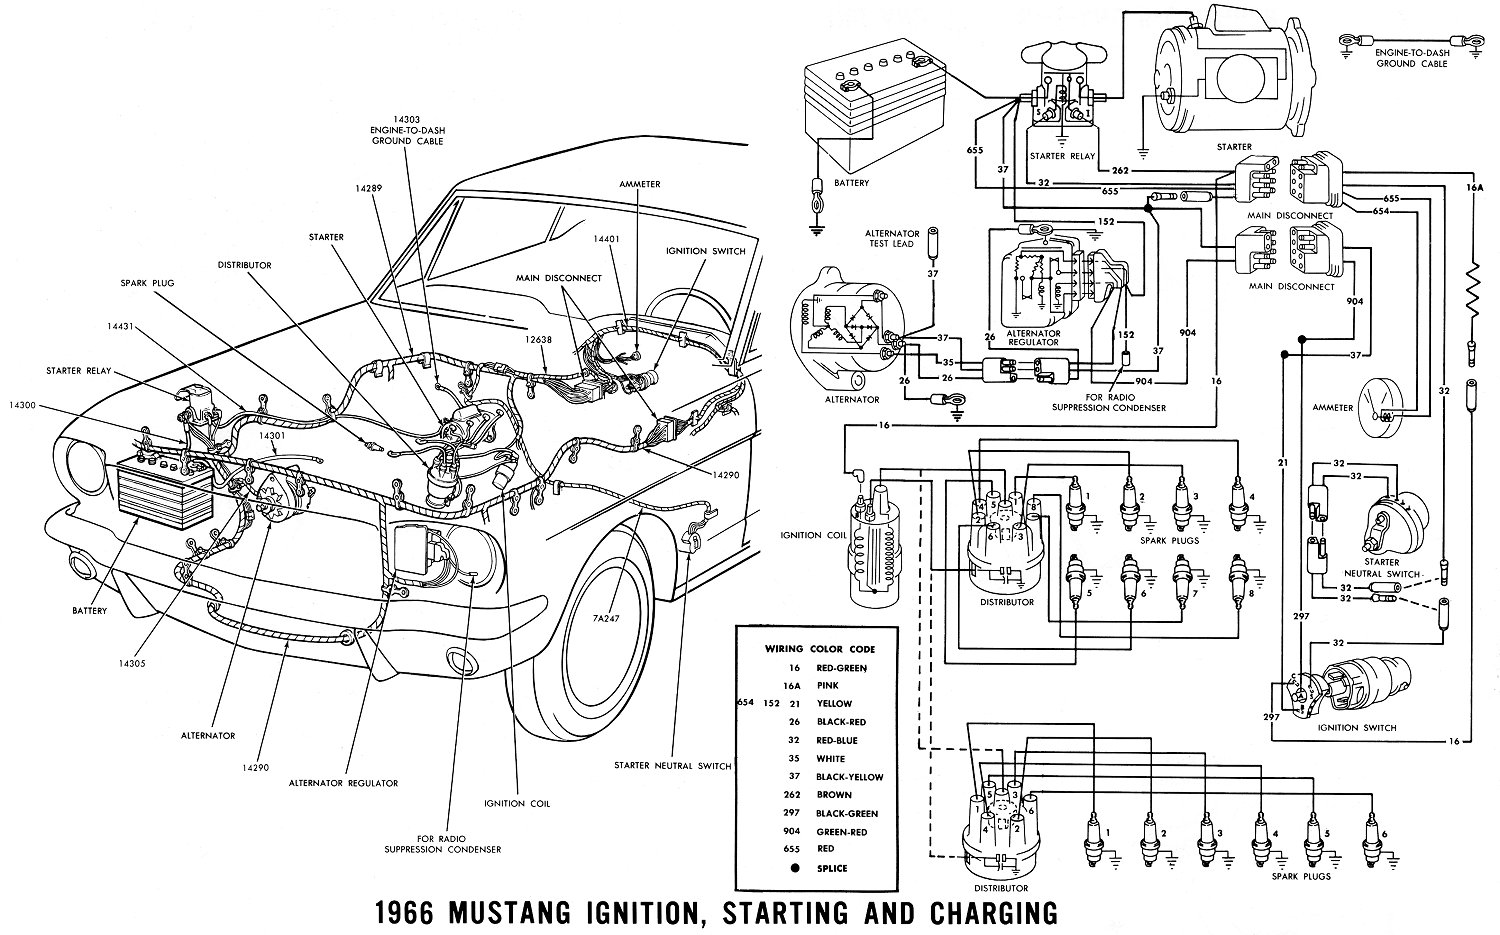 390544742481 besides How To Read Car Wiring Diagrams also 1967 Chevelle Wiring Diagram Ebay also Kia Can Bus Wiring Connectors in addition 1966 Mustang Ignition Wiring Diagram. on 71 ltd power window diagram